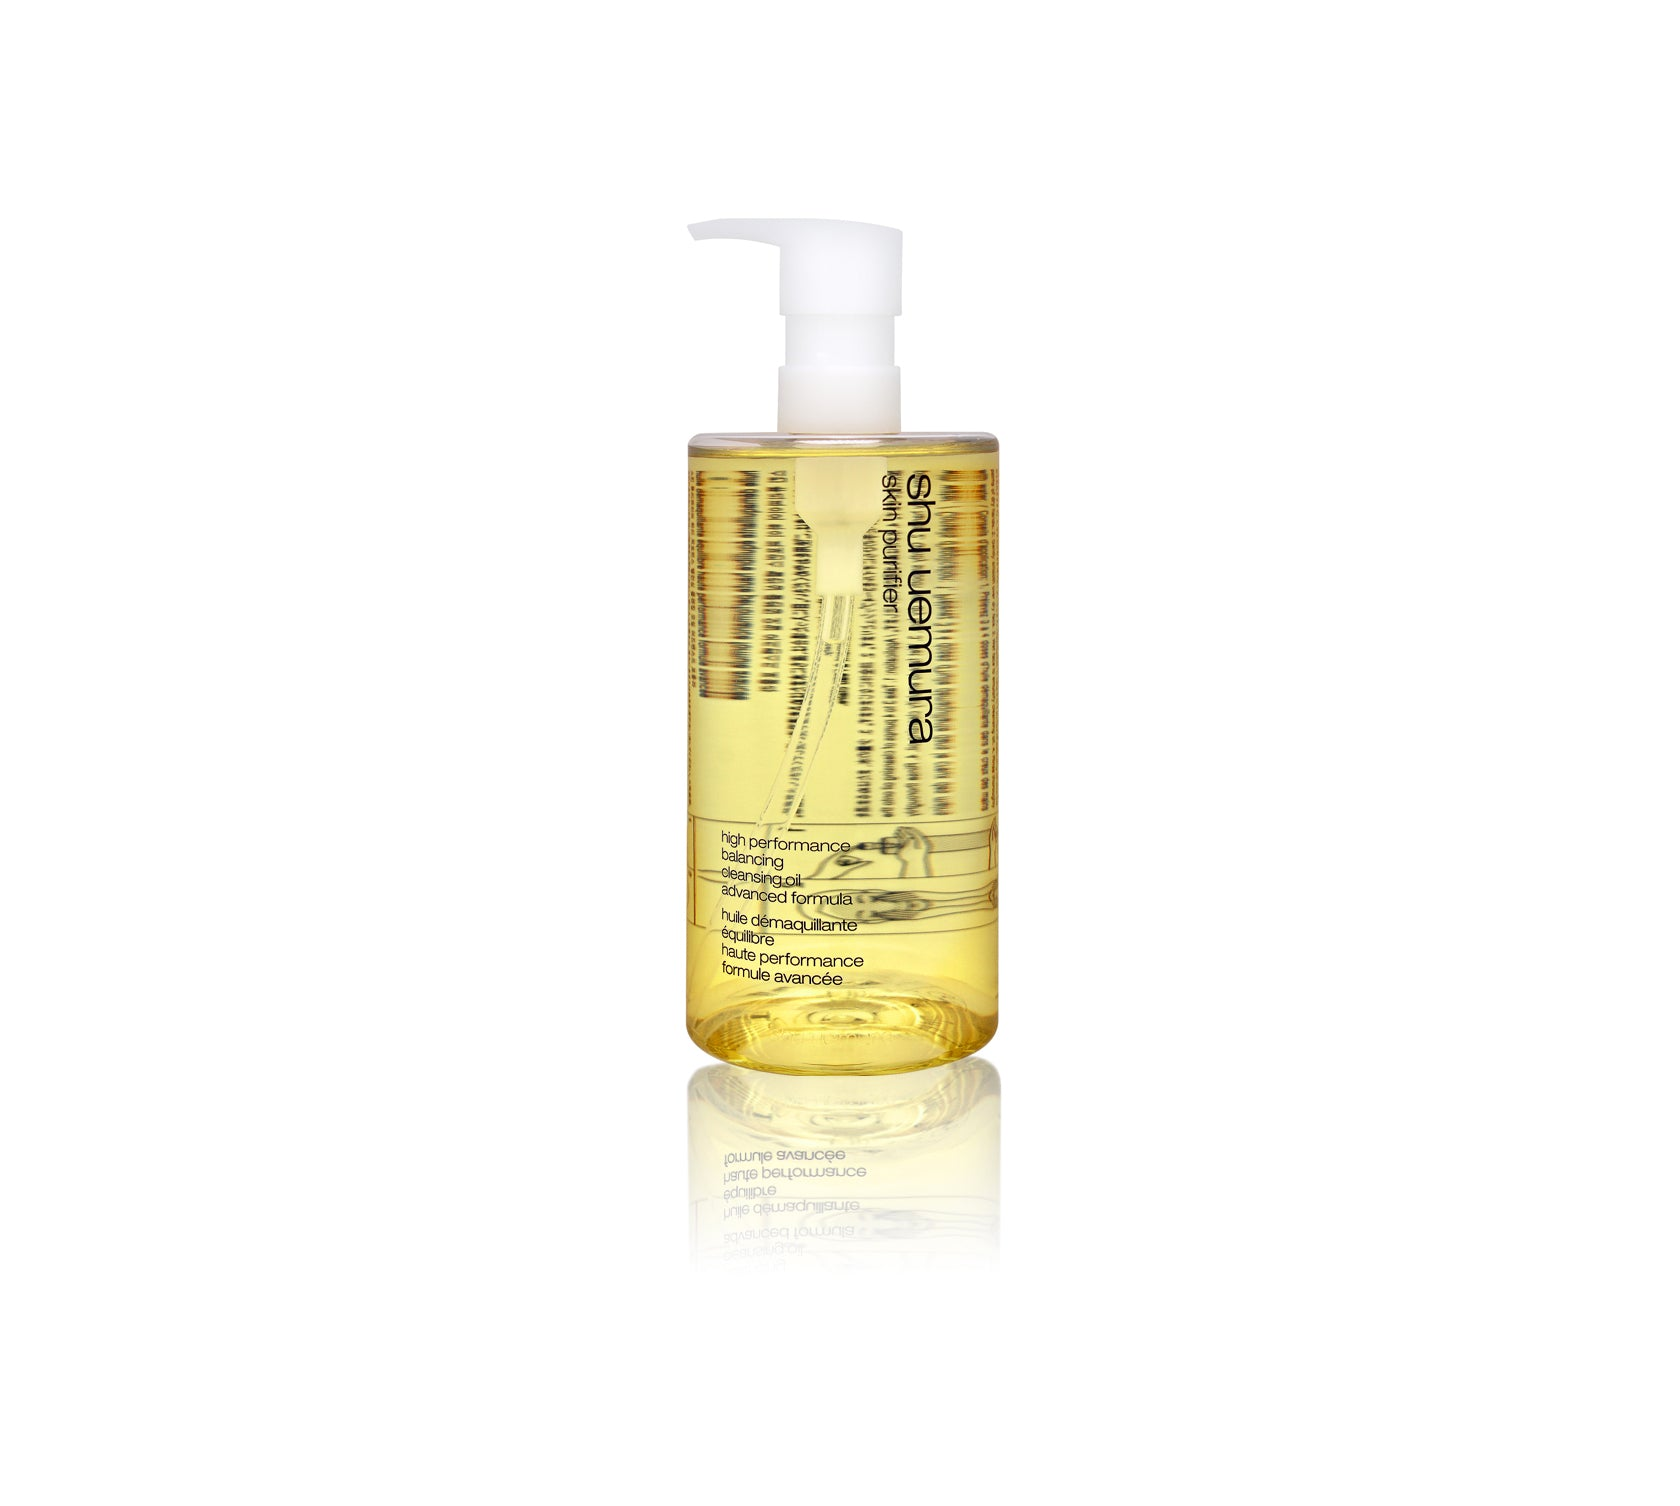 high-performance-balancing-cleansing-oil-advanced-formula